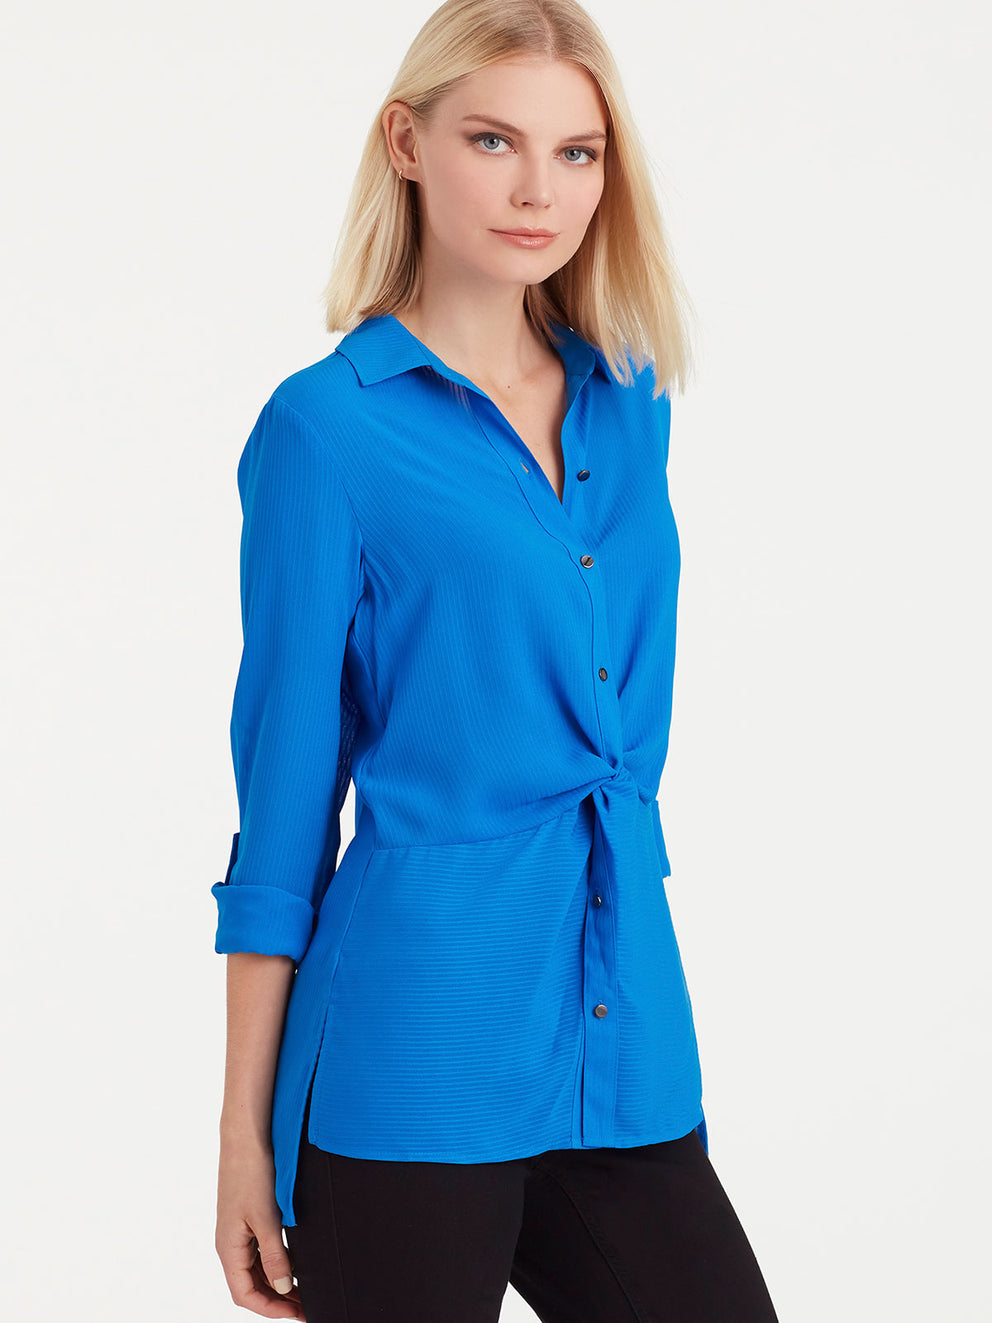 The Jones New York Twist Front Shirt in color Bright Sapphire - Image Position 2